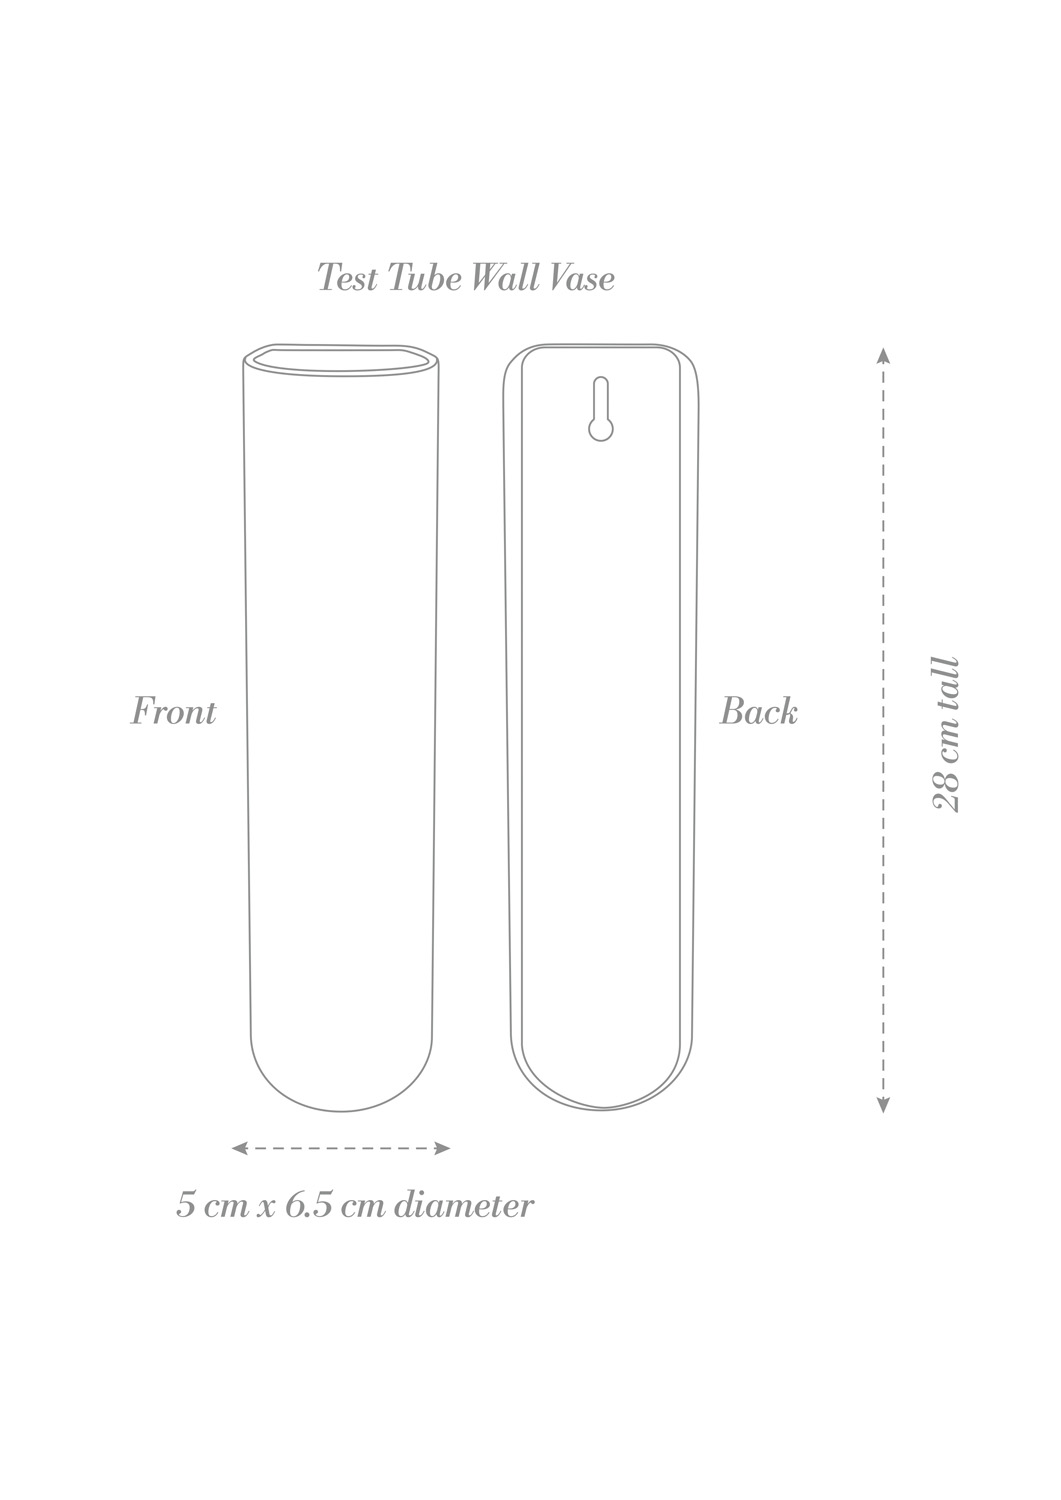 Test Tube Wall Vase Product Diagram